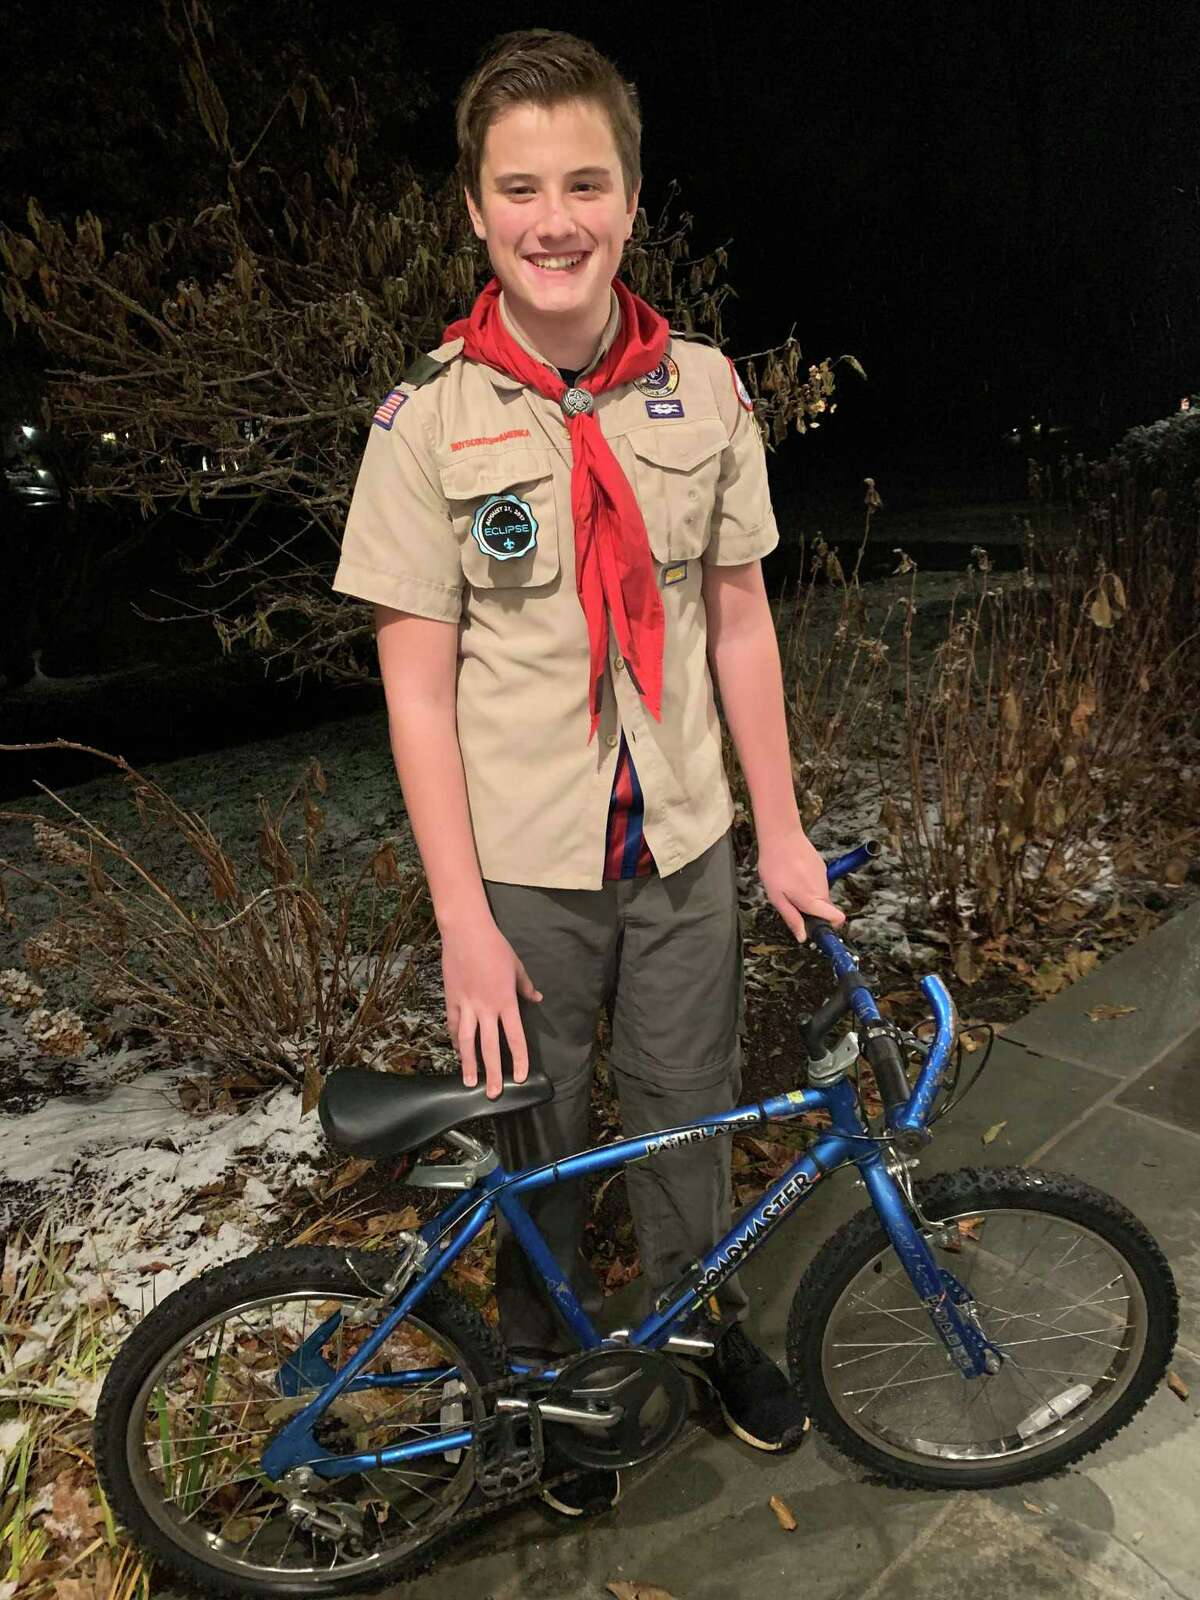 Jacob Anger, 13, is collecting bikes to help children and adults in Africa.